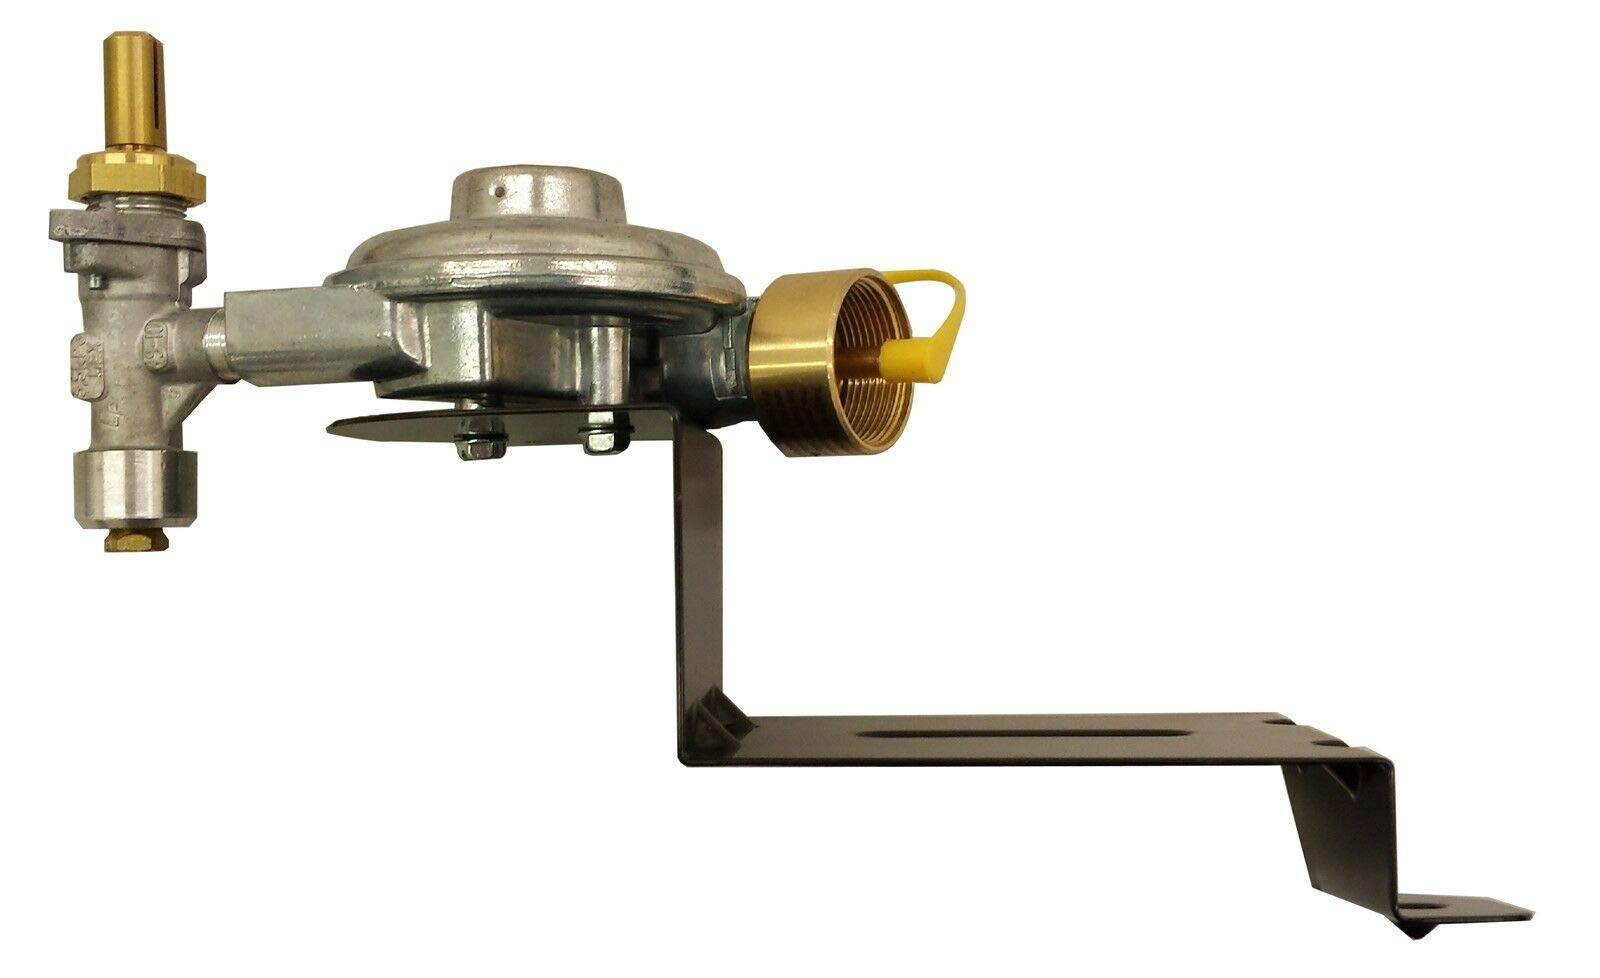 dh Valve and Regulator 64865 Fits Weber Q2000 Wsry by dh